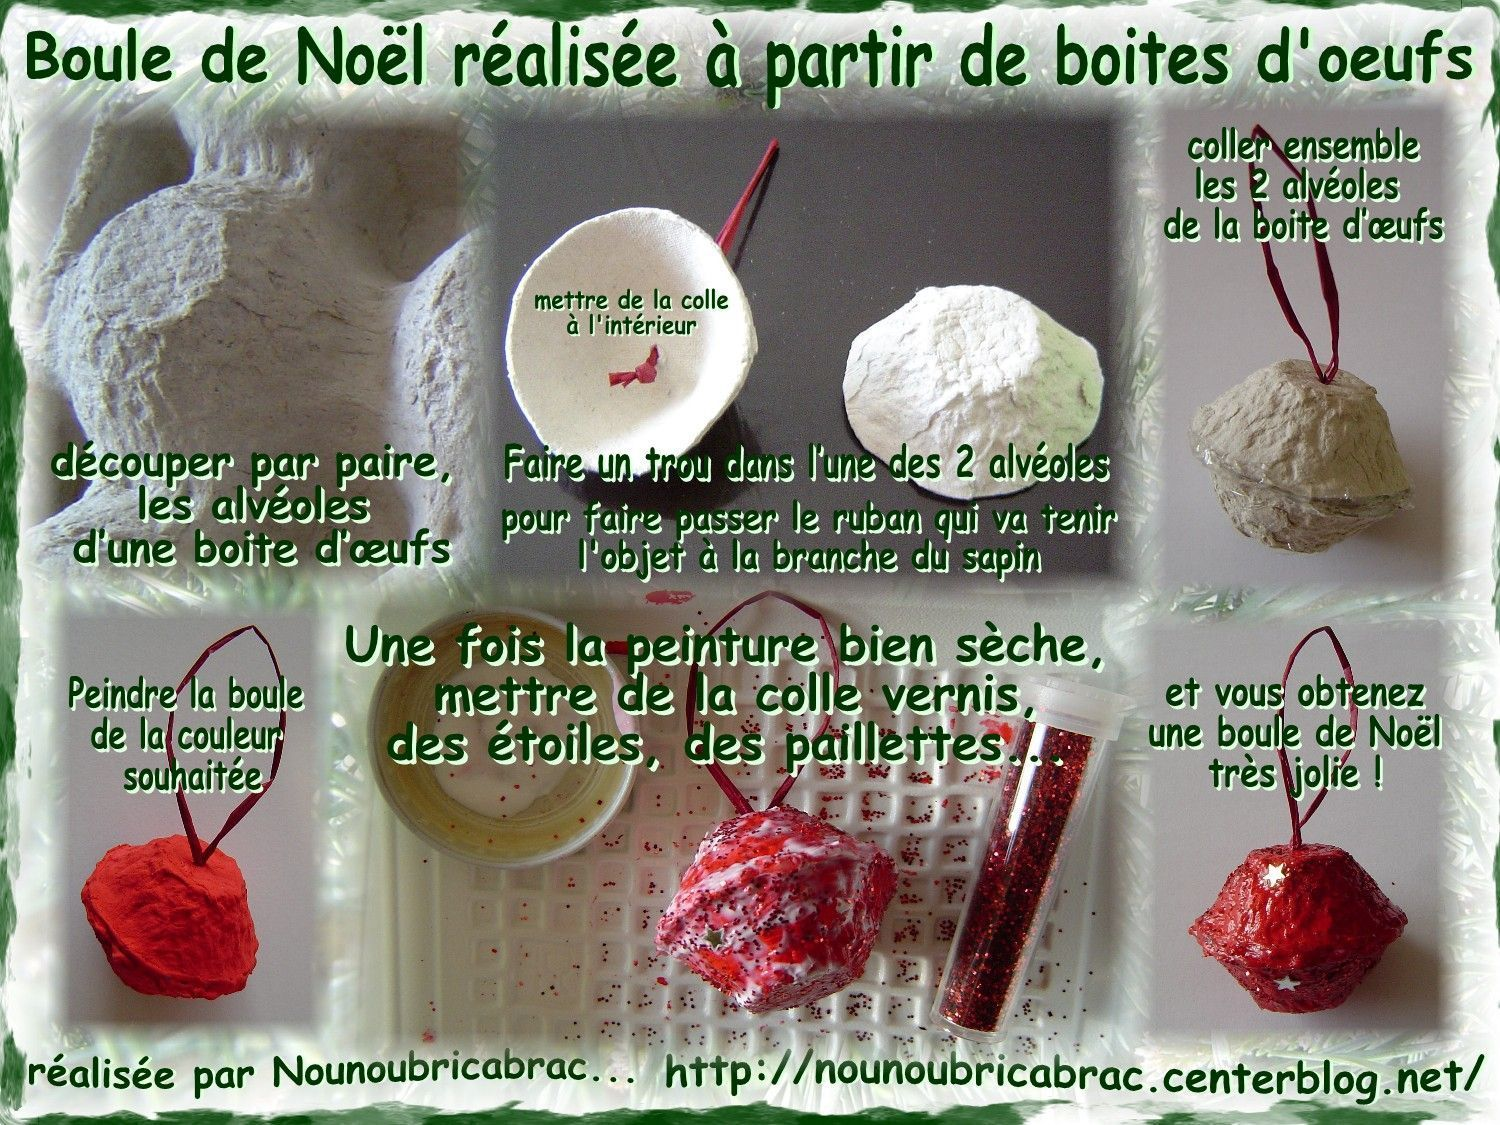 Boule de Nol ralise avec des boites dufs